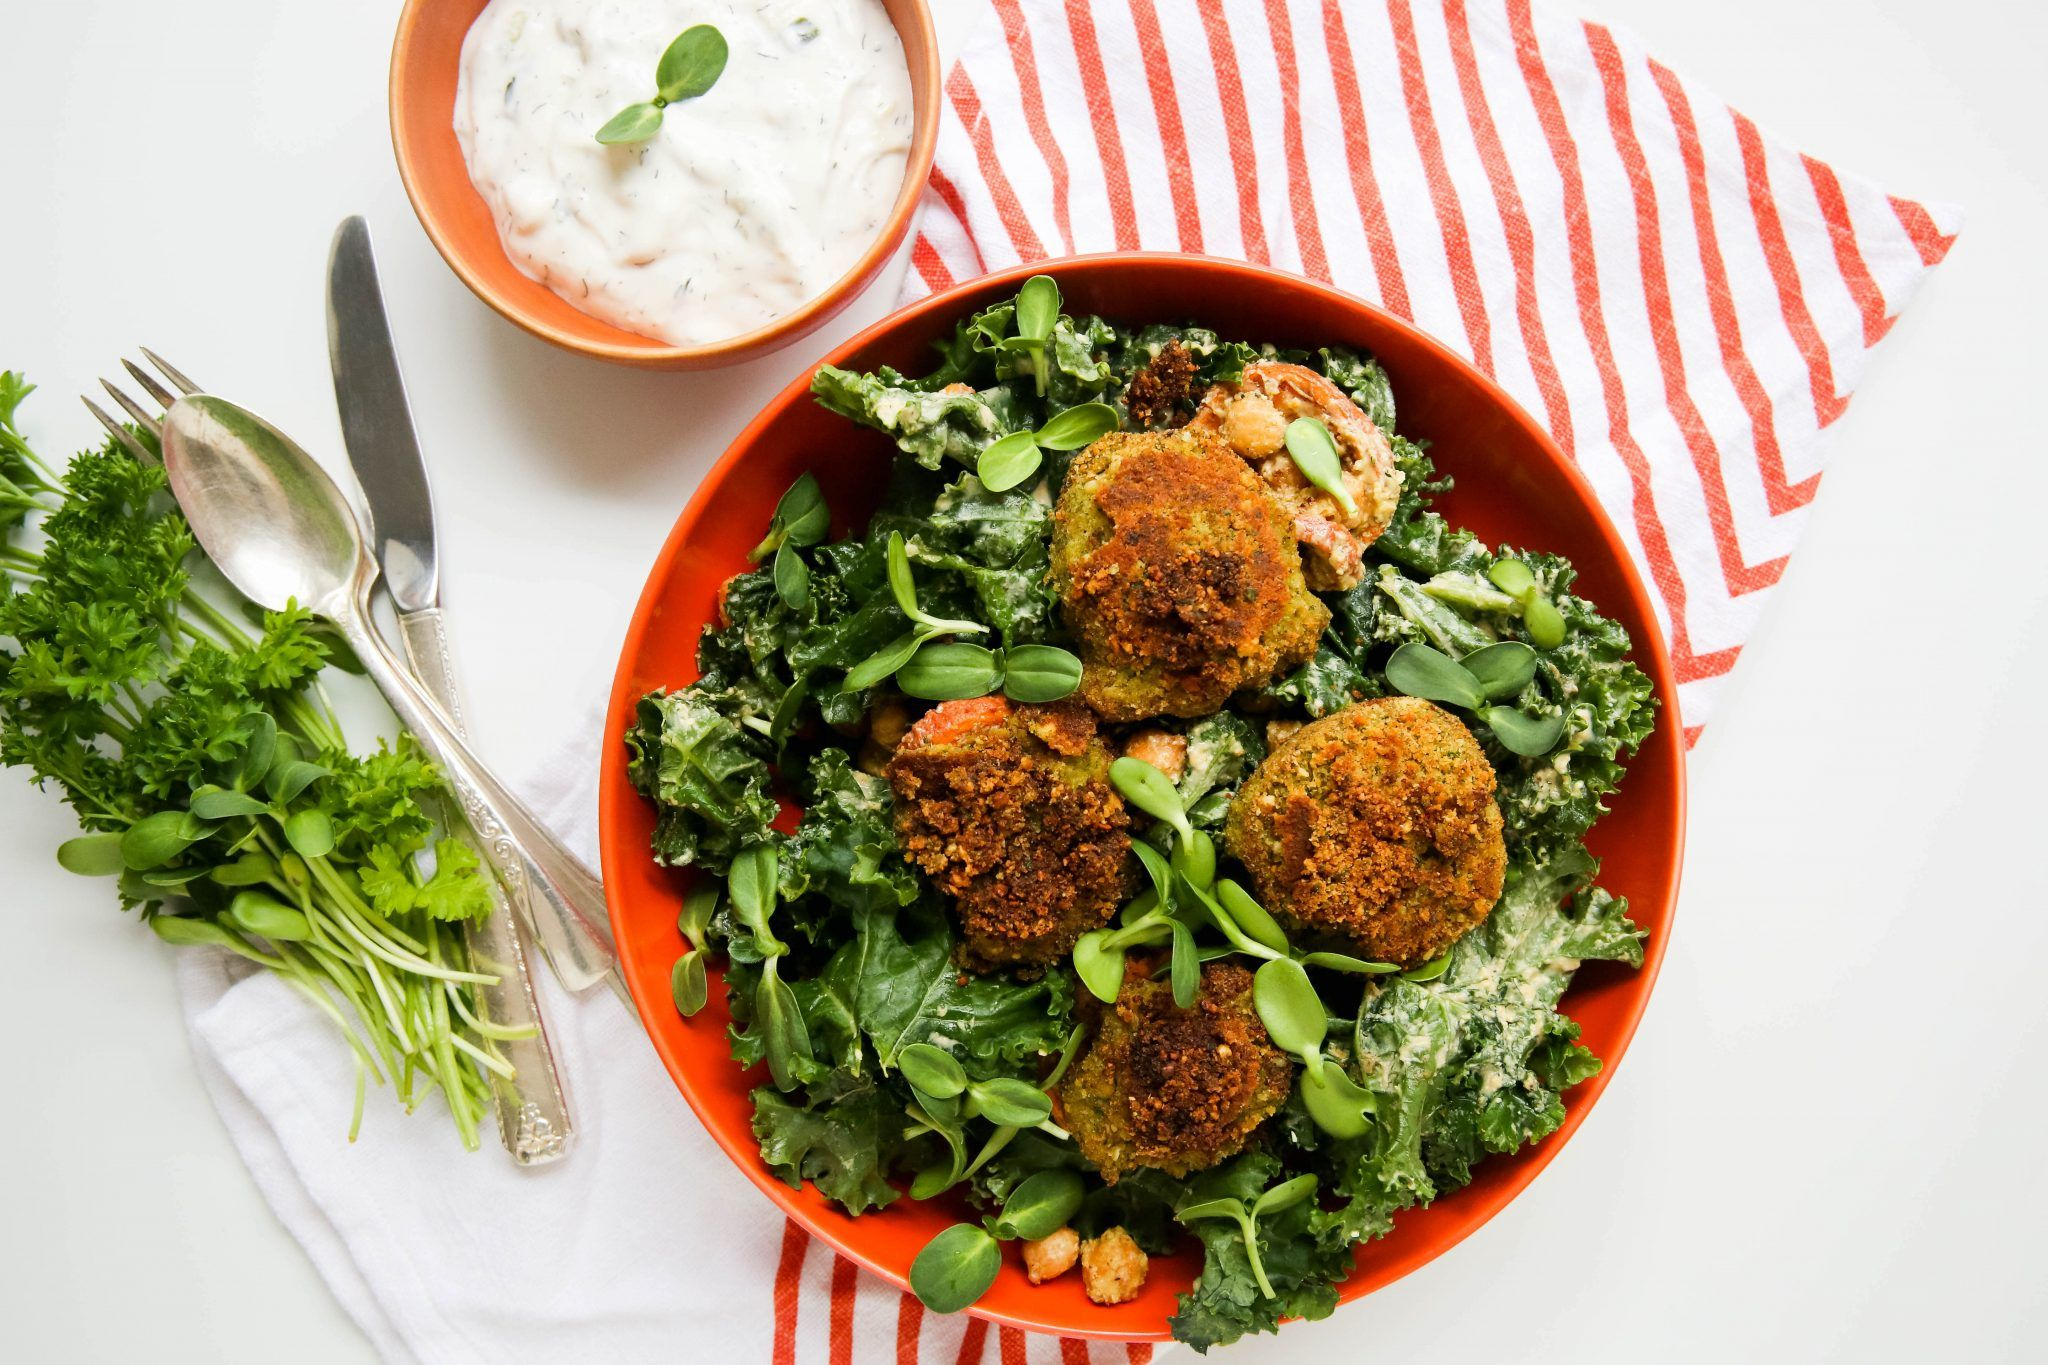 Baked Falafel With Canned Chickpeas Walktoeat Recipe Baked Falafel Falafel Recipe Easy Falafel With Canned Chickpeas